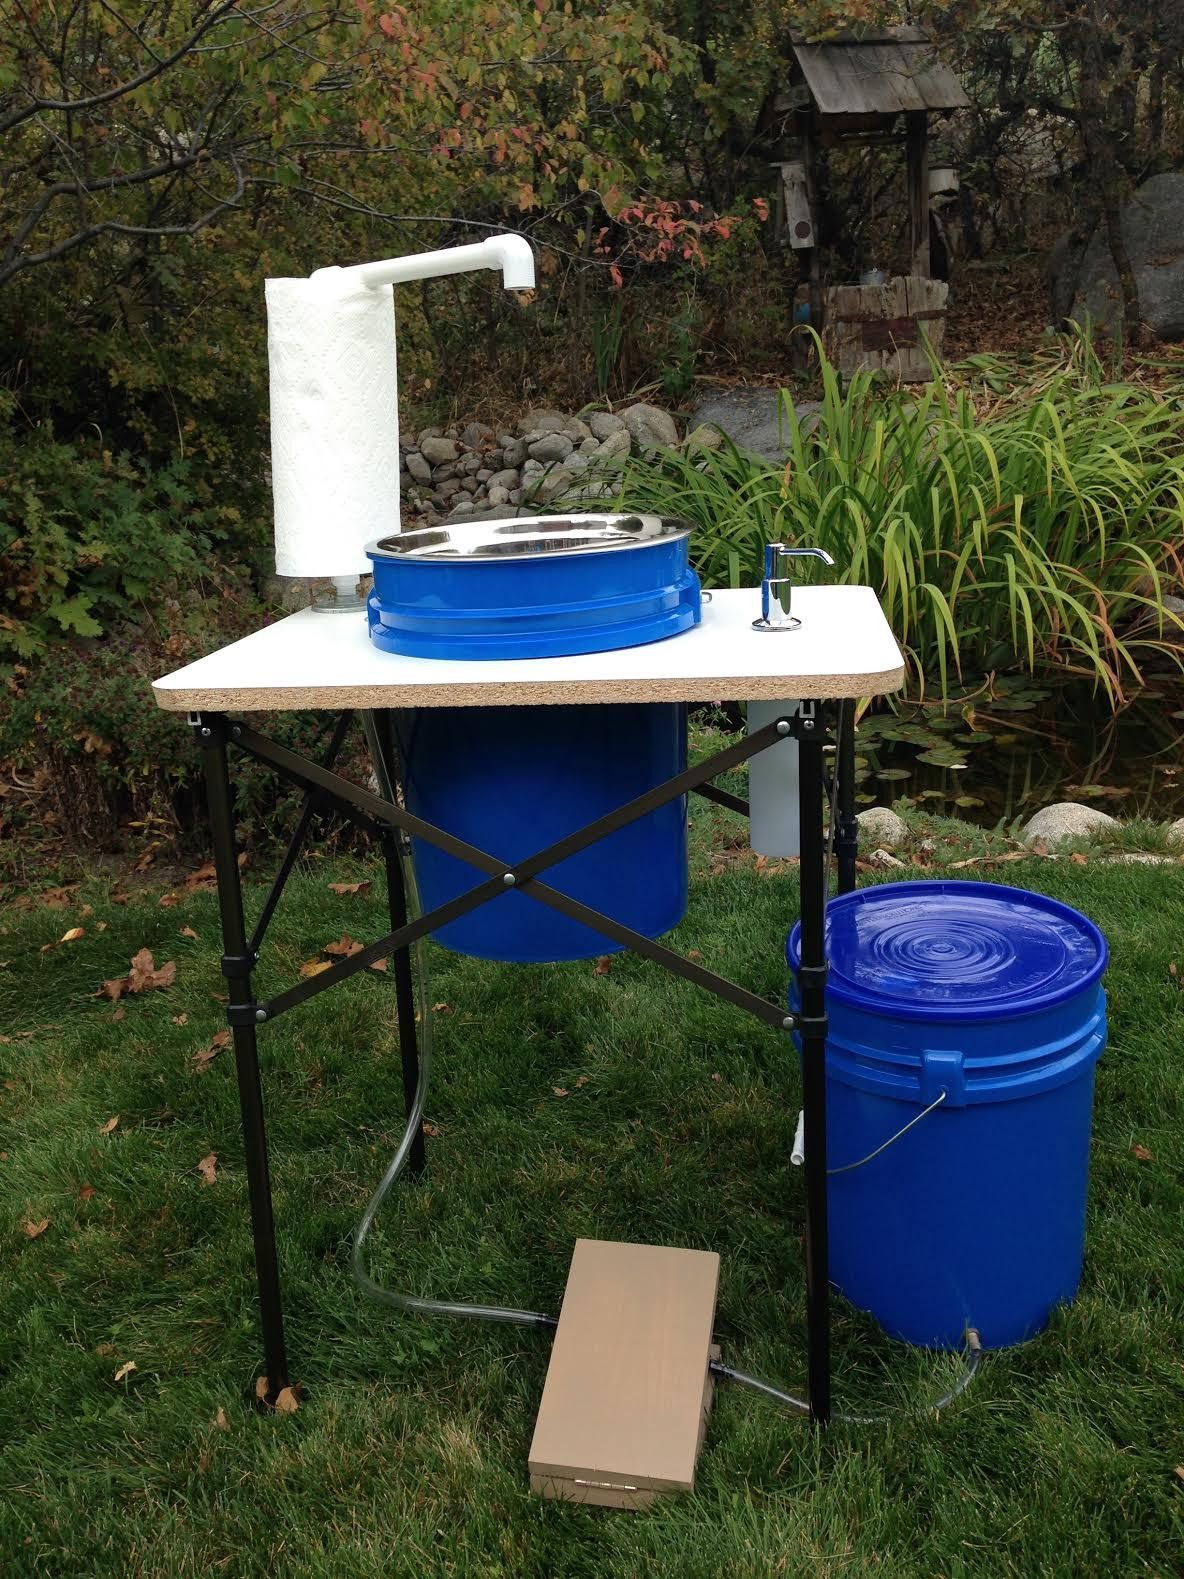 Deluxe Camp Sink Make your outdoor experience more clean